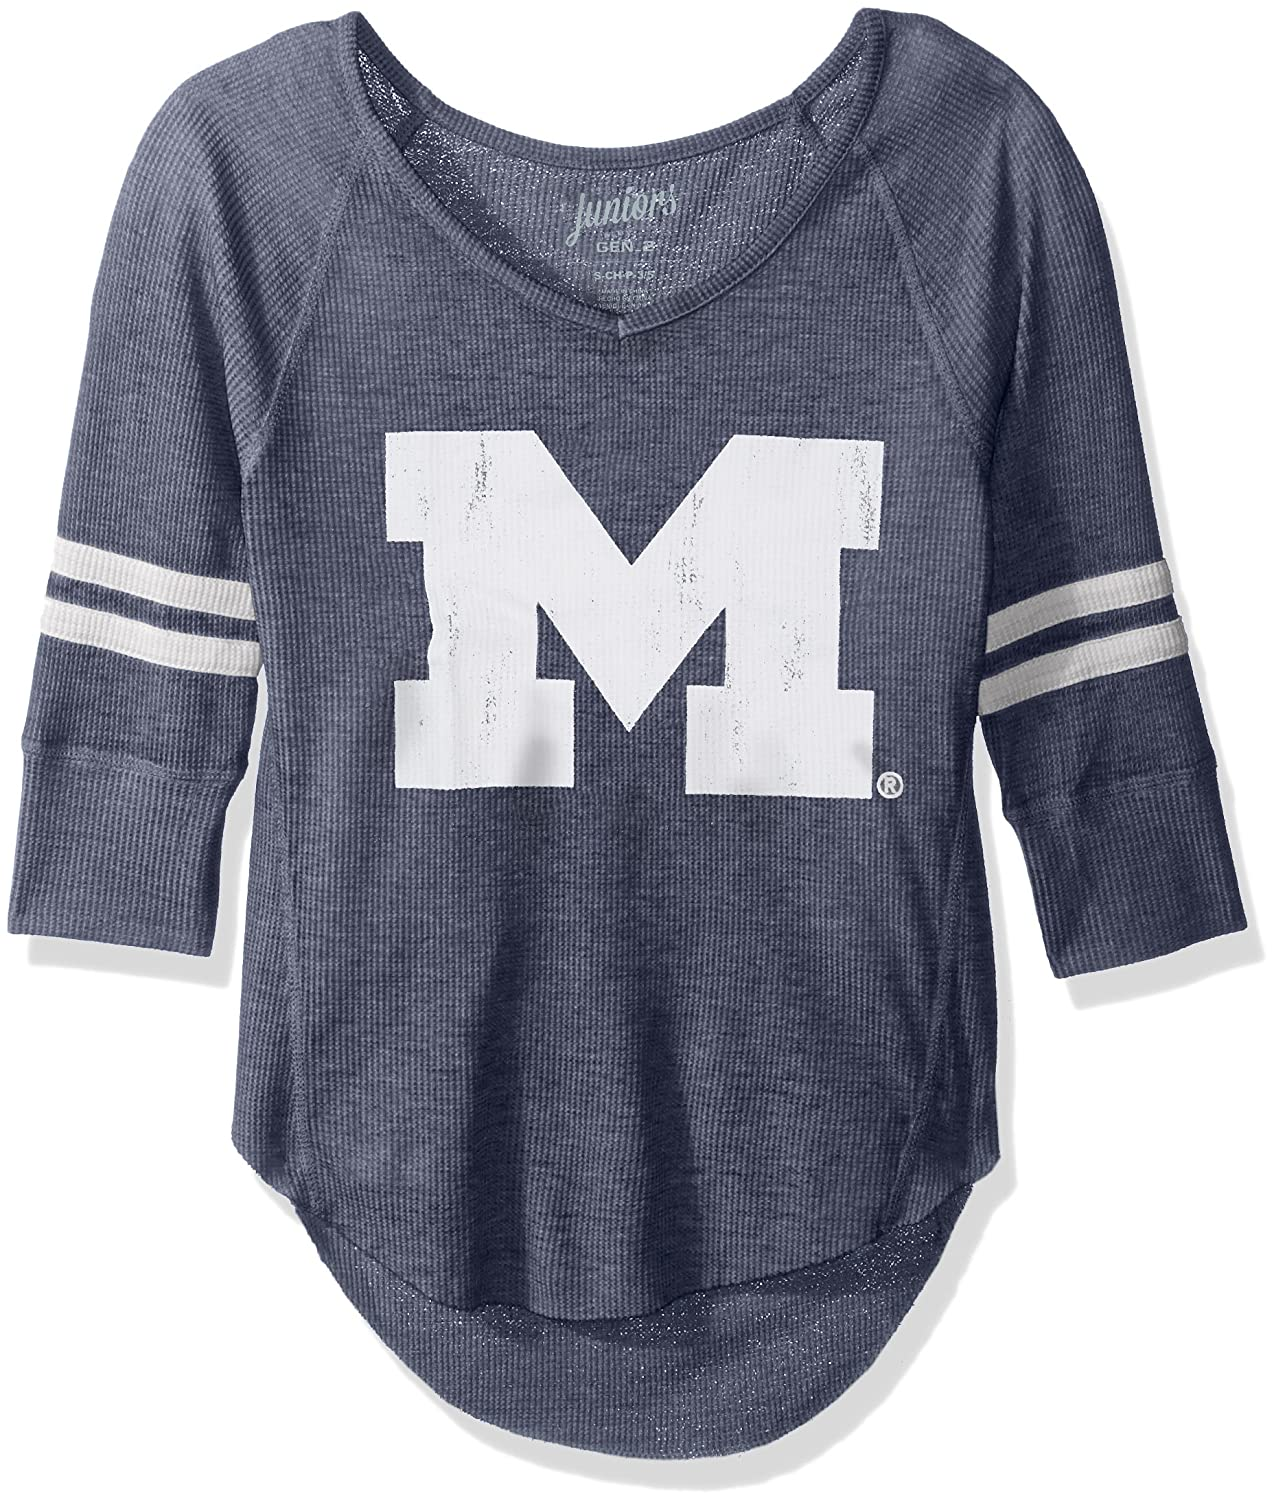 NCAA Oregon Ducks Juniors Outerstuff Relaxed 3//4 Raglan Thermal Top Team Color 3-5 Small